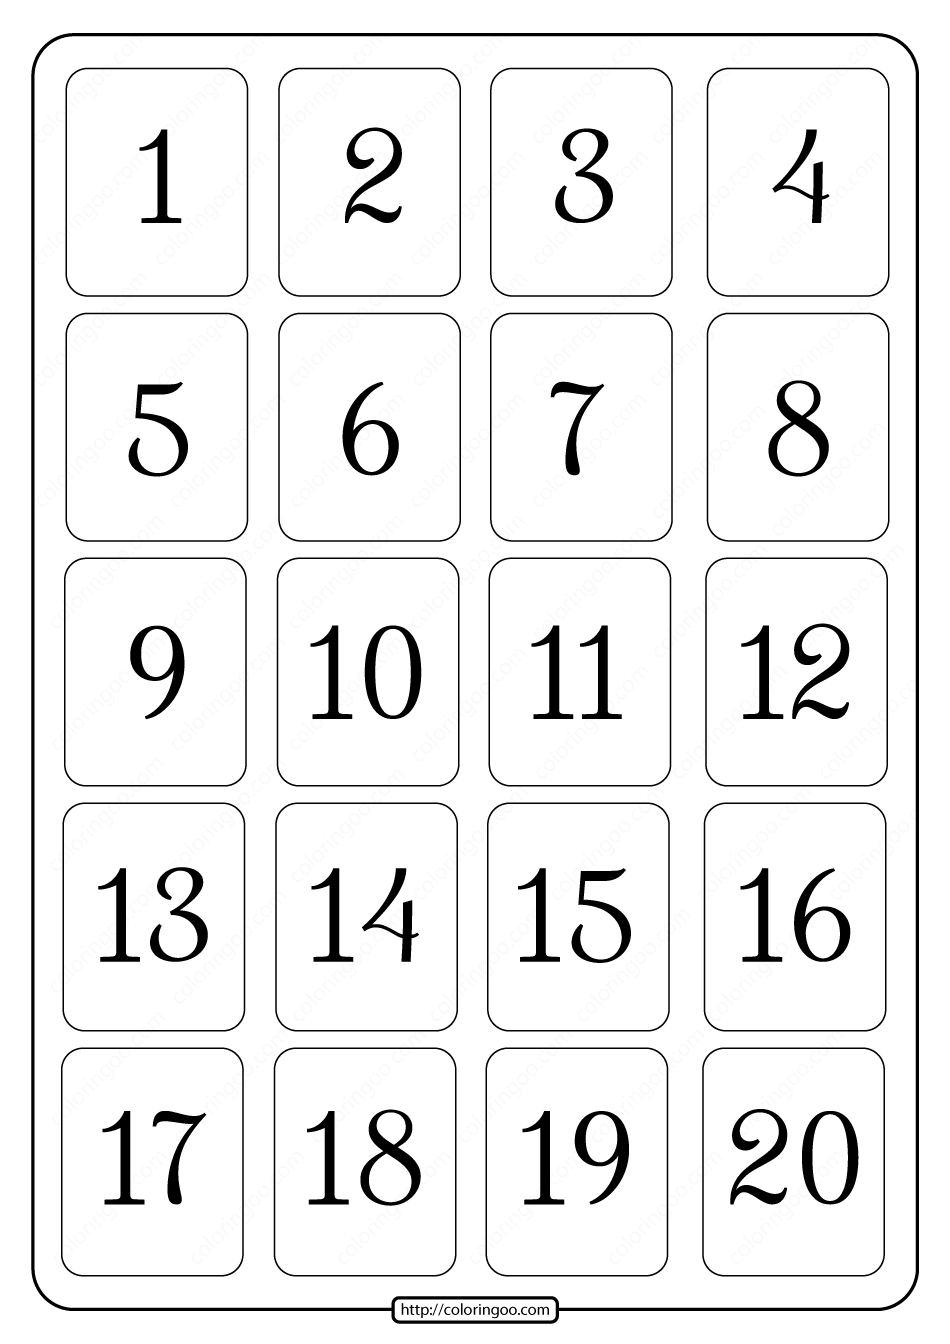 Printable 1 to 20 Rectangle Border Numbers Worksheet 03